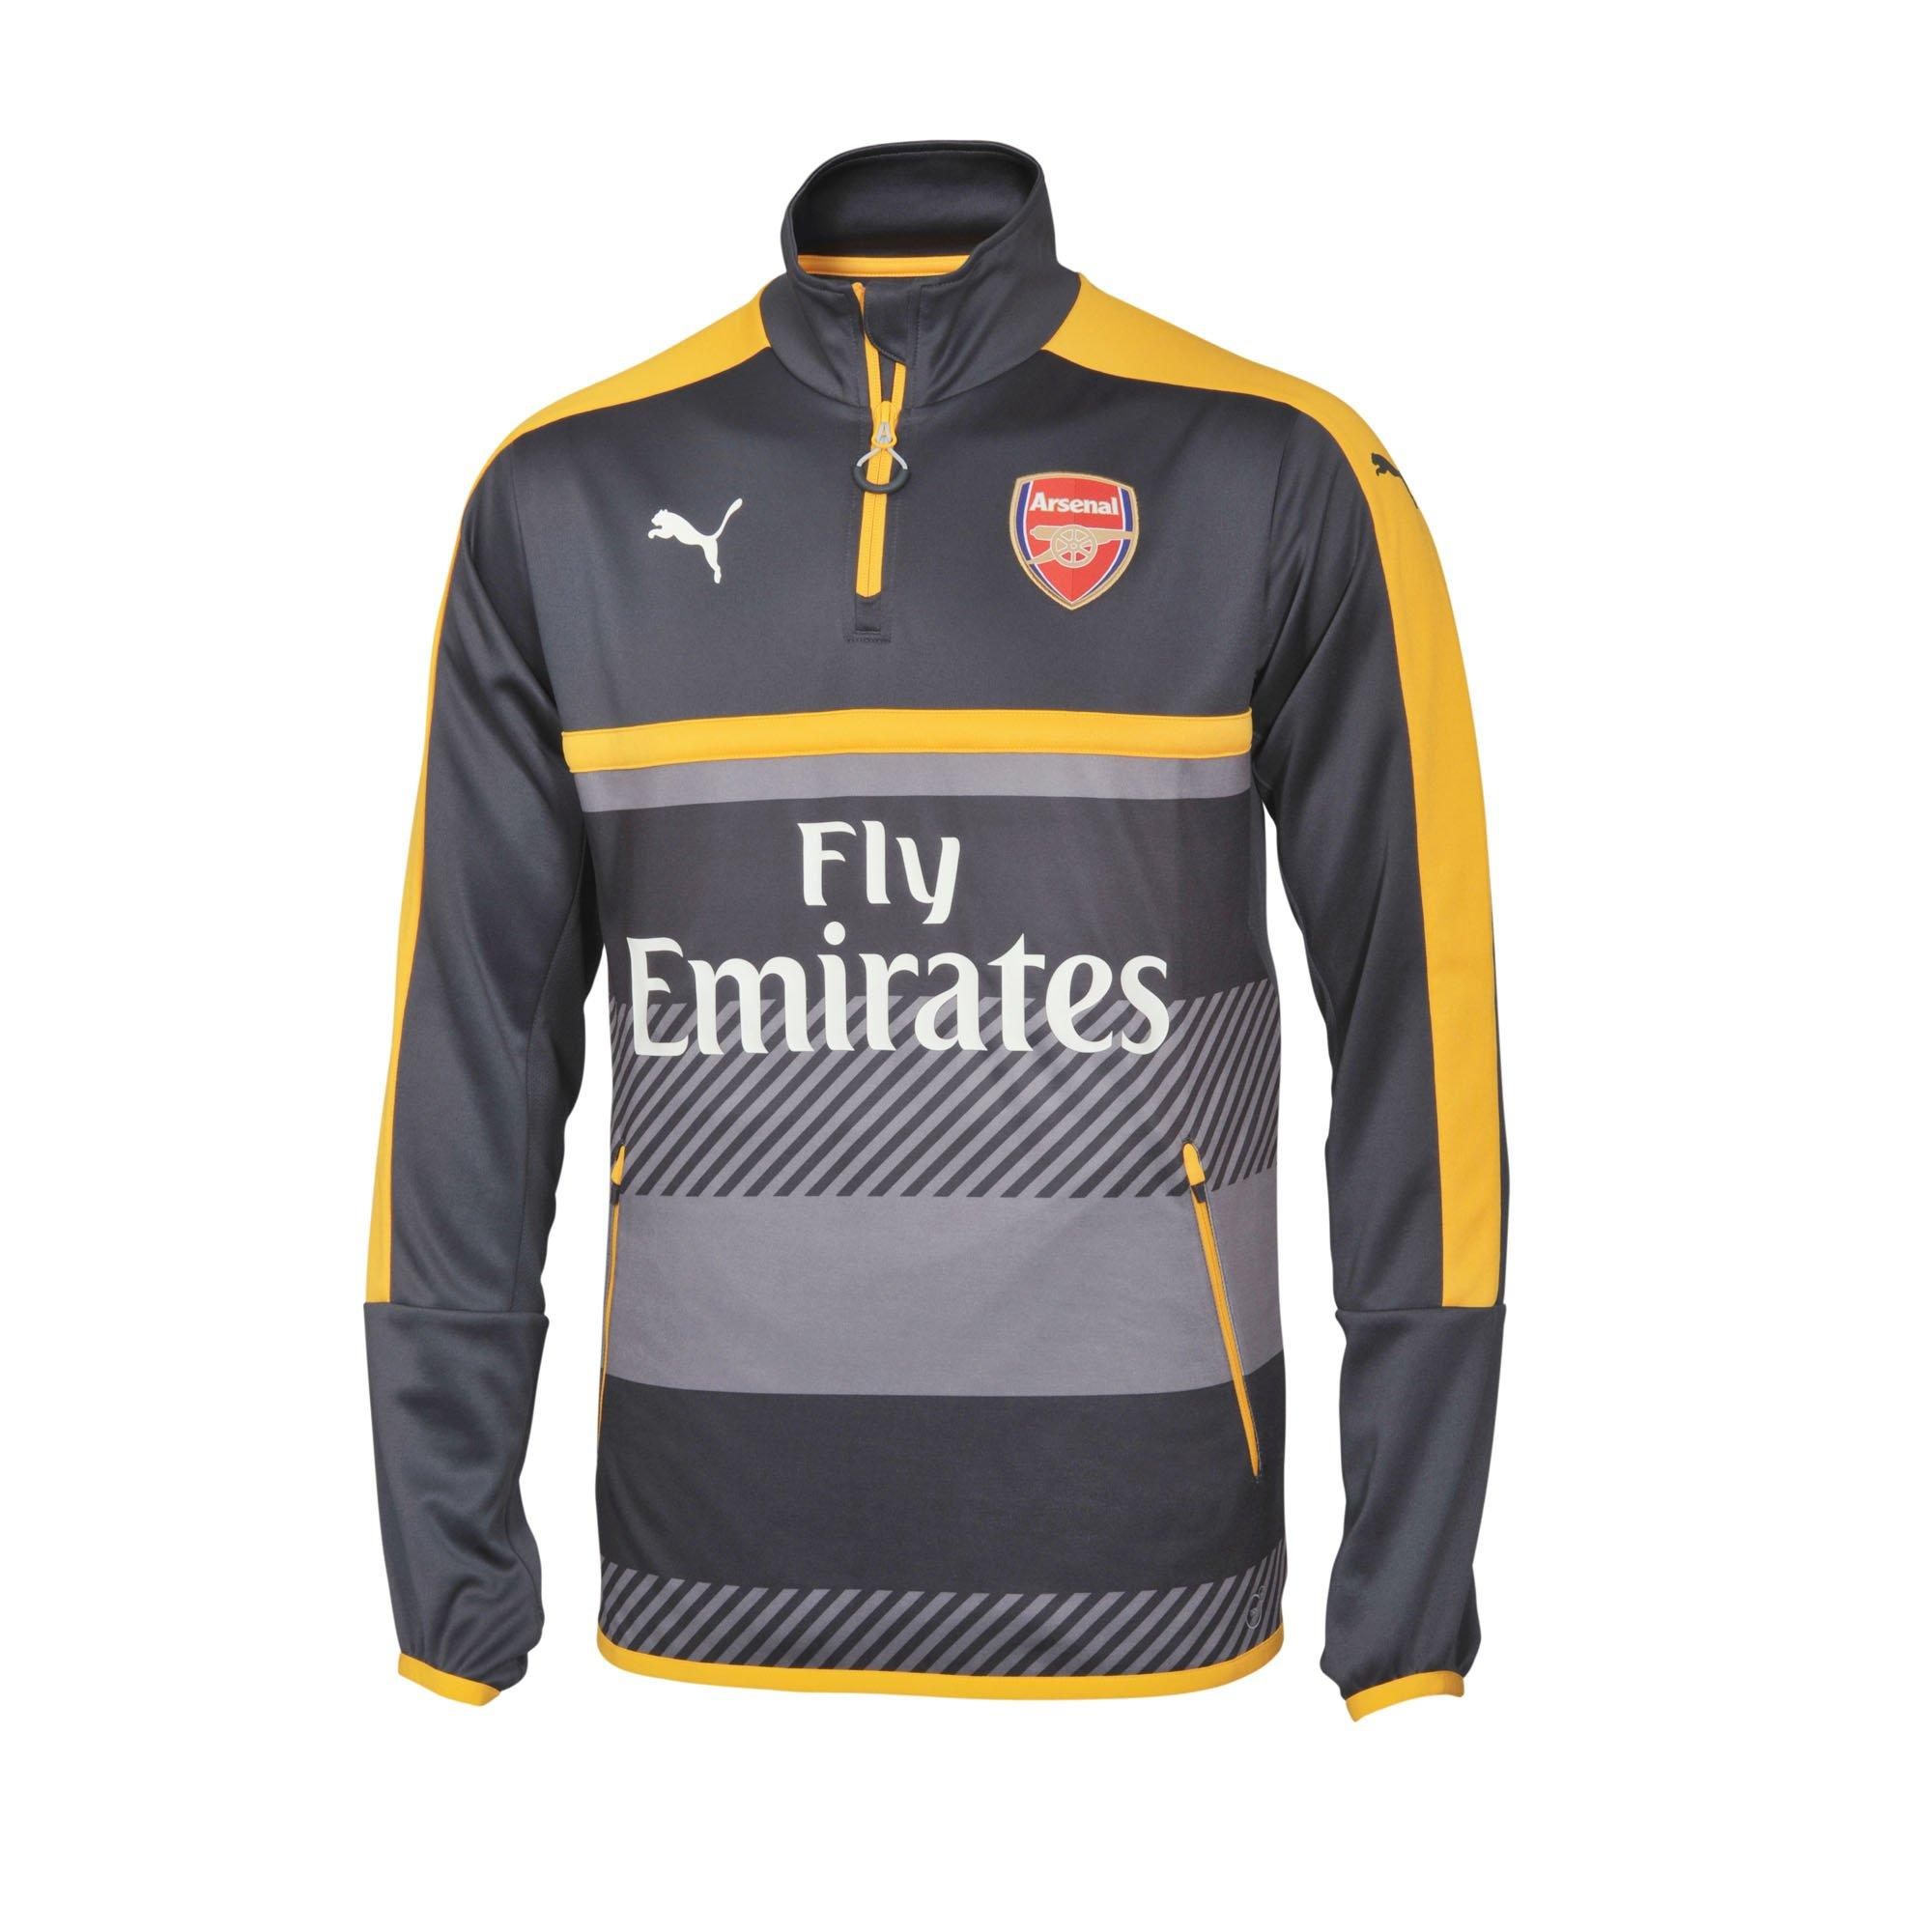 342eafbdf54 arsenal away jacket on sale > OFF76% Discounts